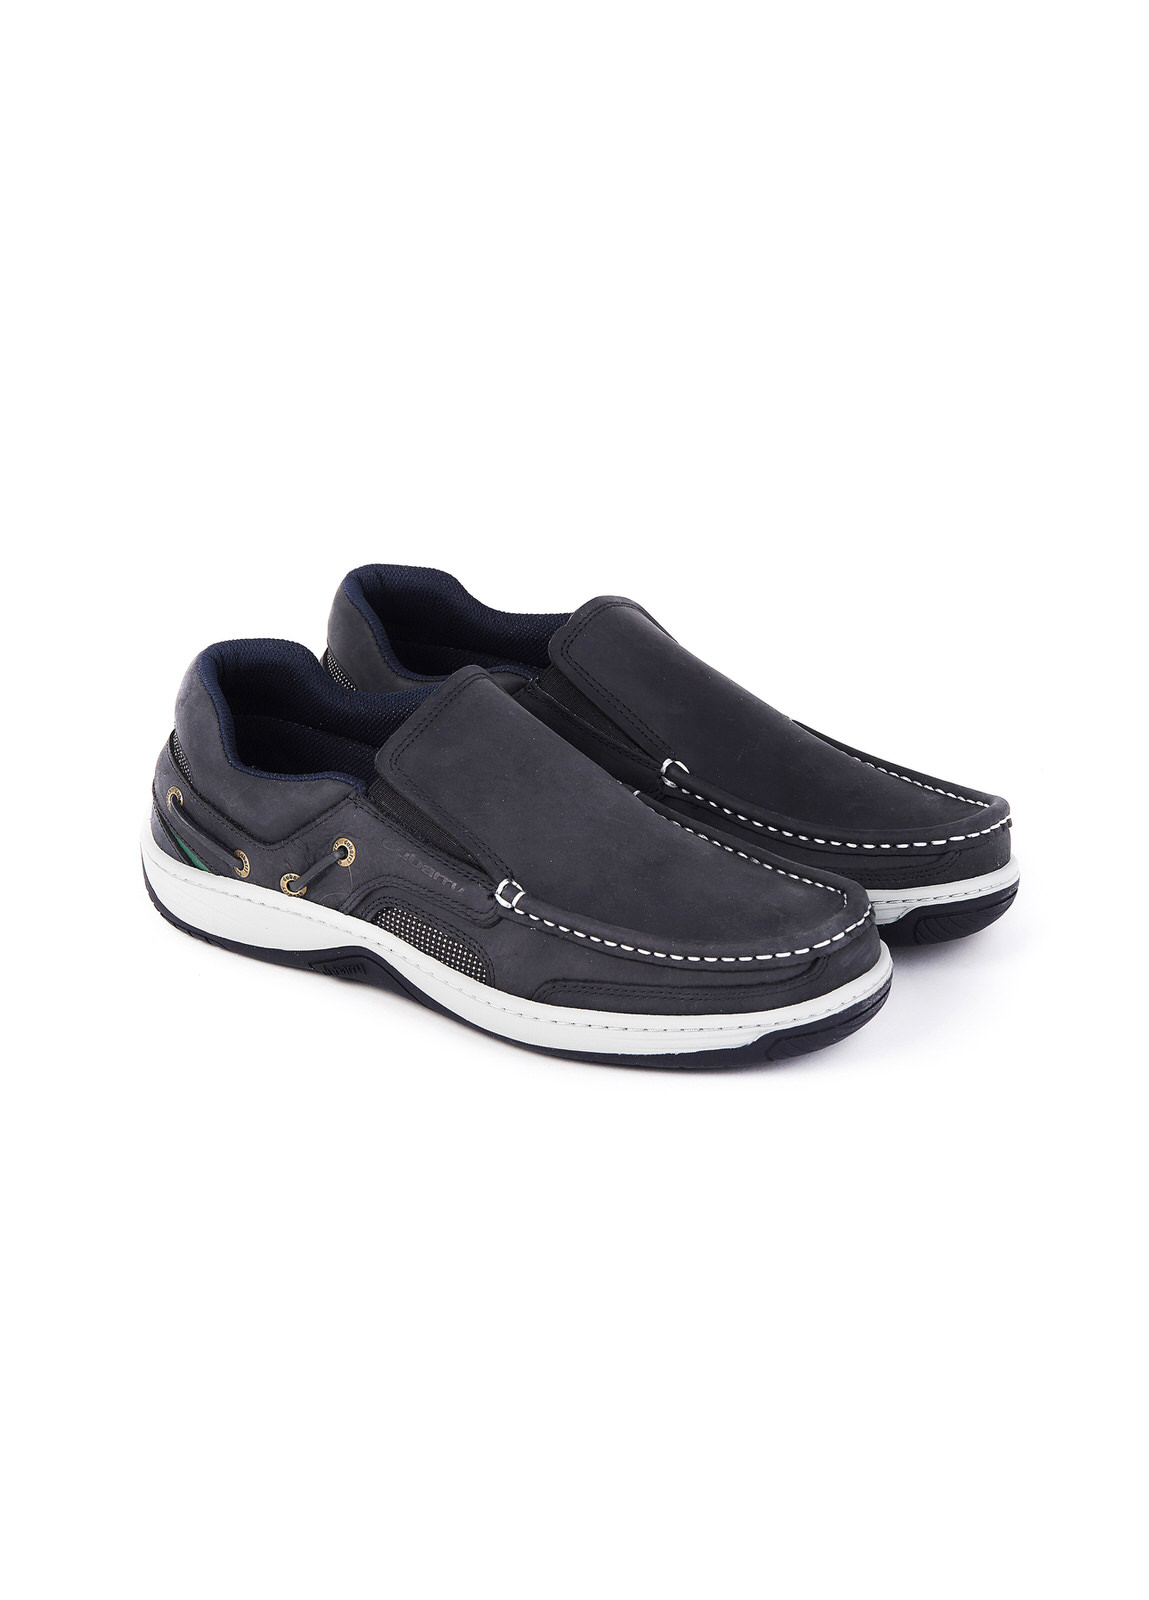 Yacht_Loafer_Navy_Image_1